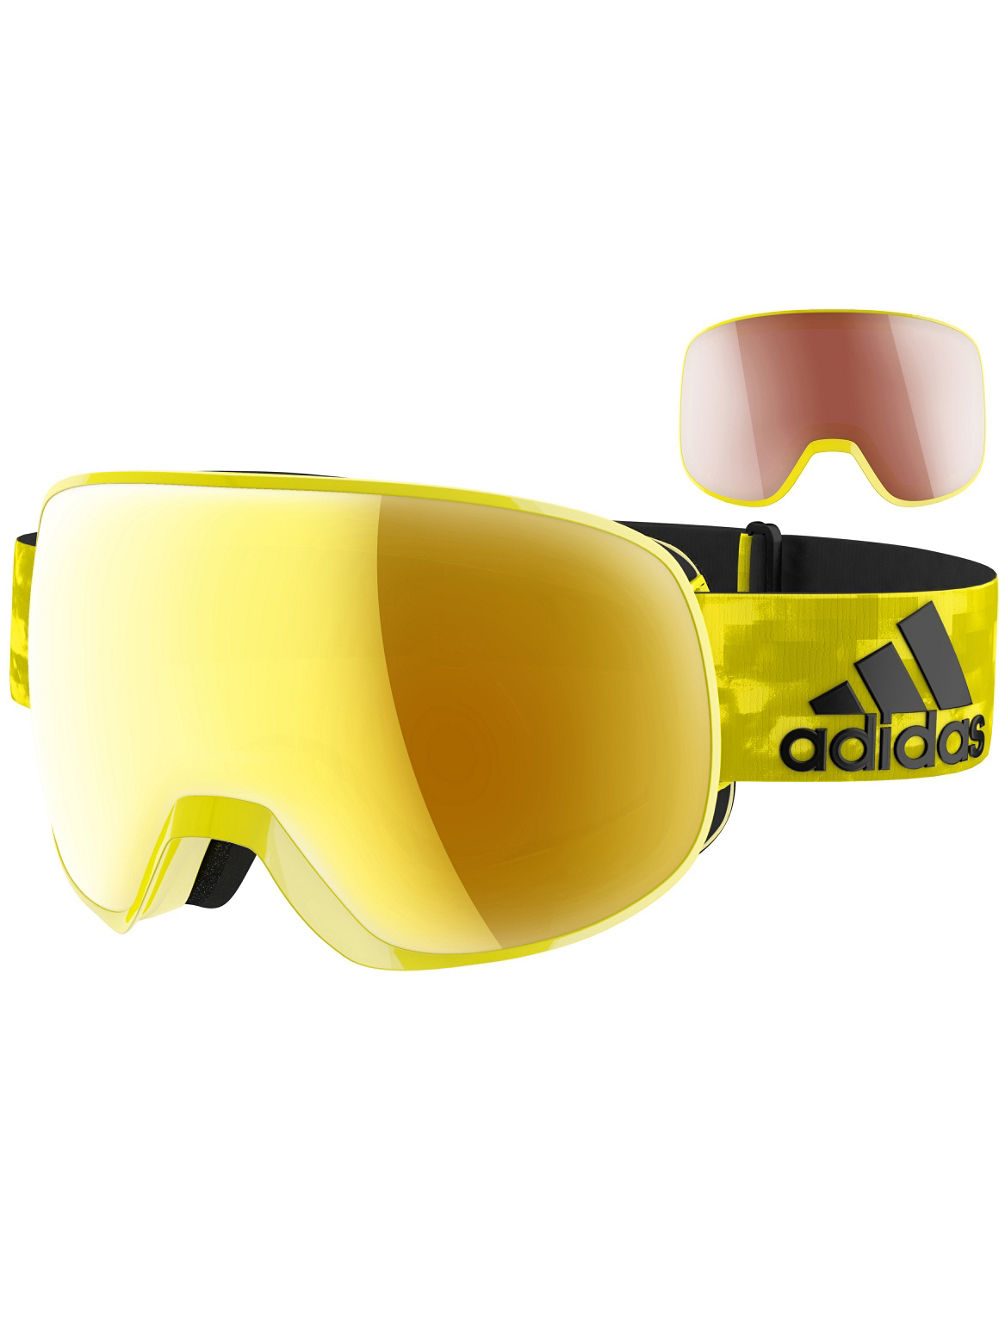 adidas-sport-progressor-pro-pack-bright-yellow-shiny